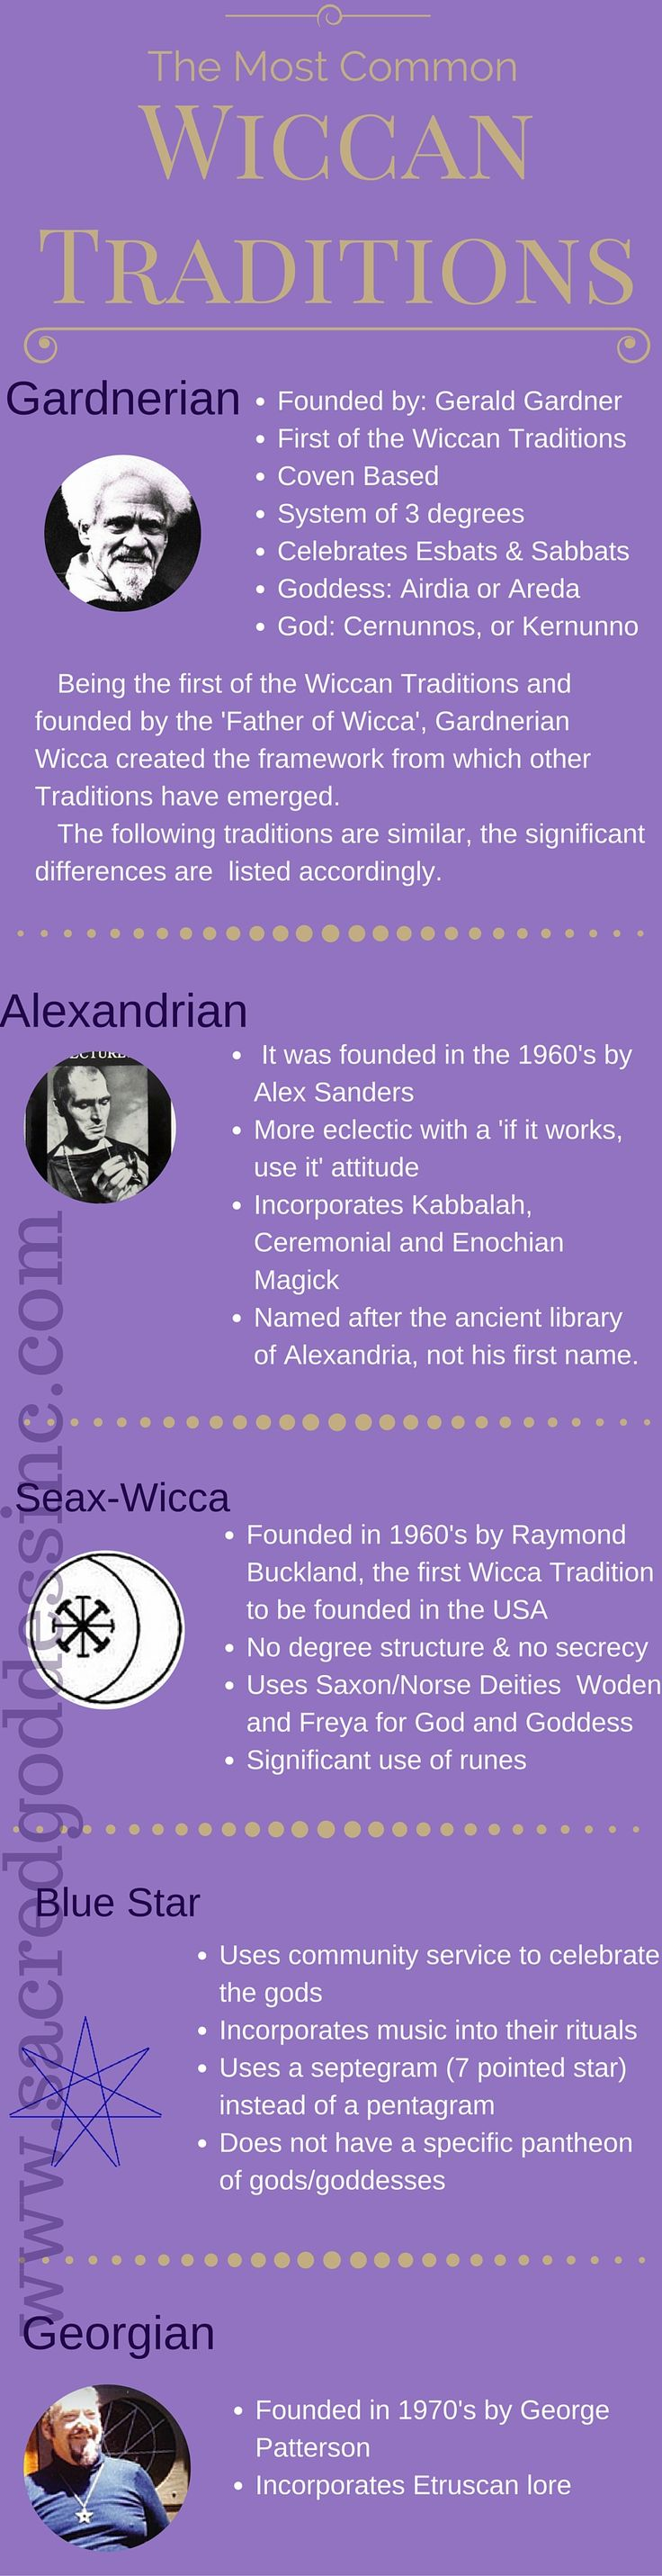 Beginner Wicca - Wiccan Traditions descendant of Gardnerian Wicca - follow us on facebook #geraldgardner #wiccatraditions #magicktraditions